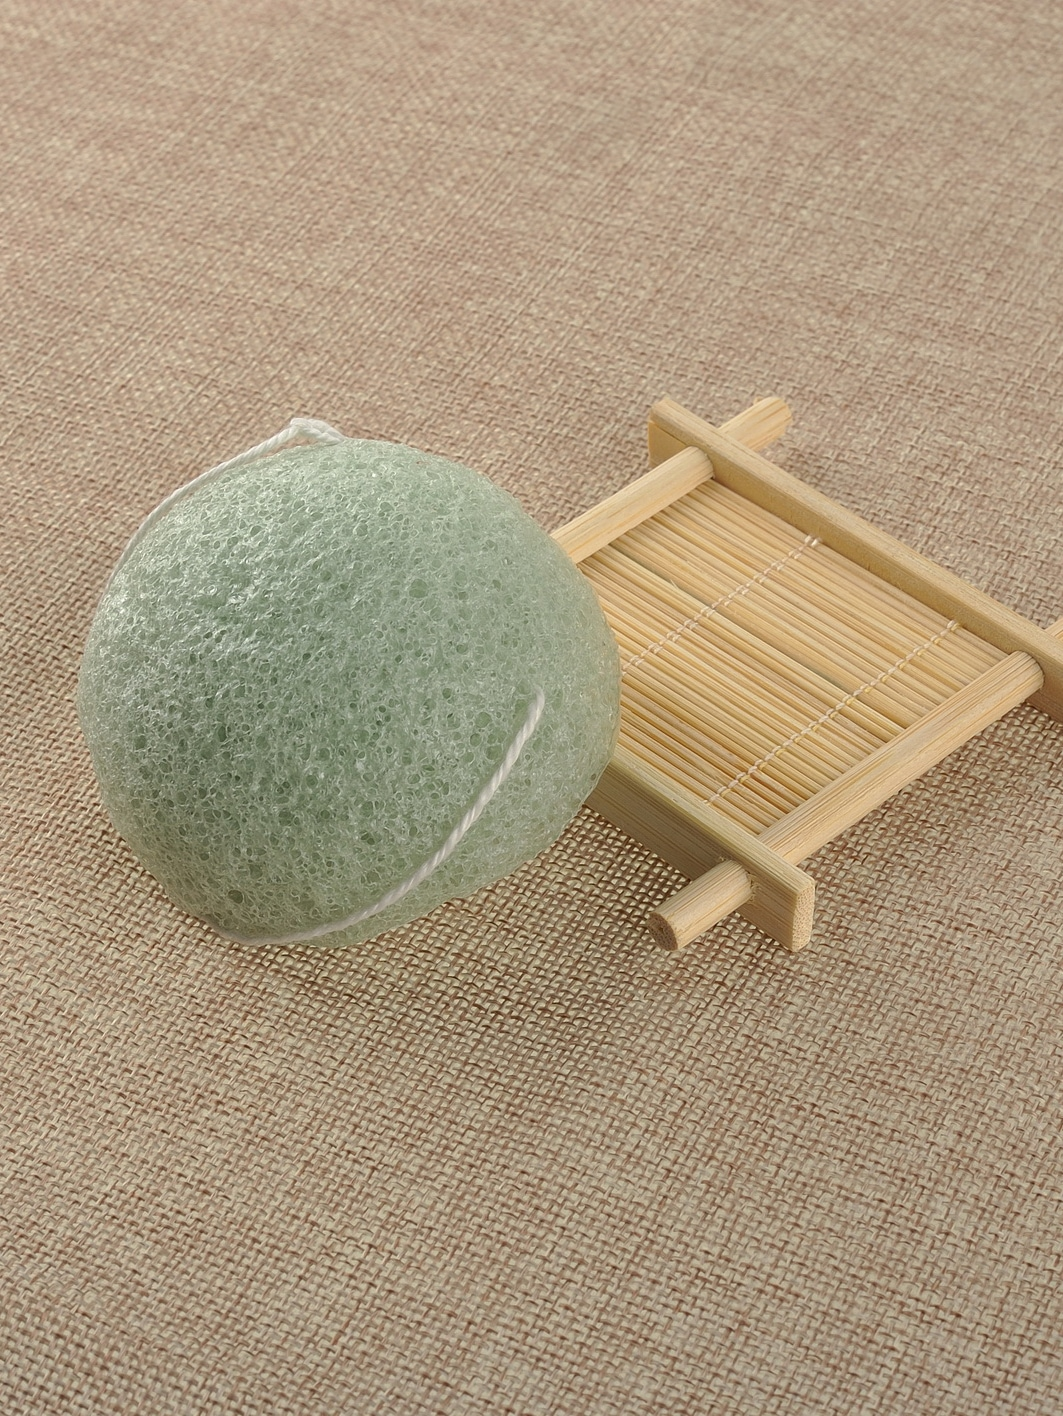 Green Natural Konjac Konnyaku Jelly Fiber Face Wash Cleansing Sponge Puff